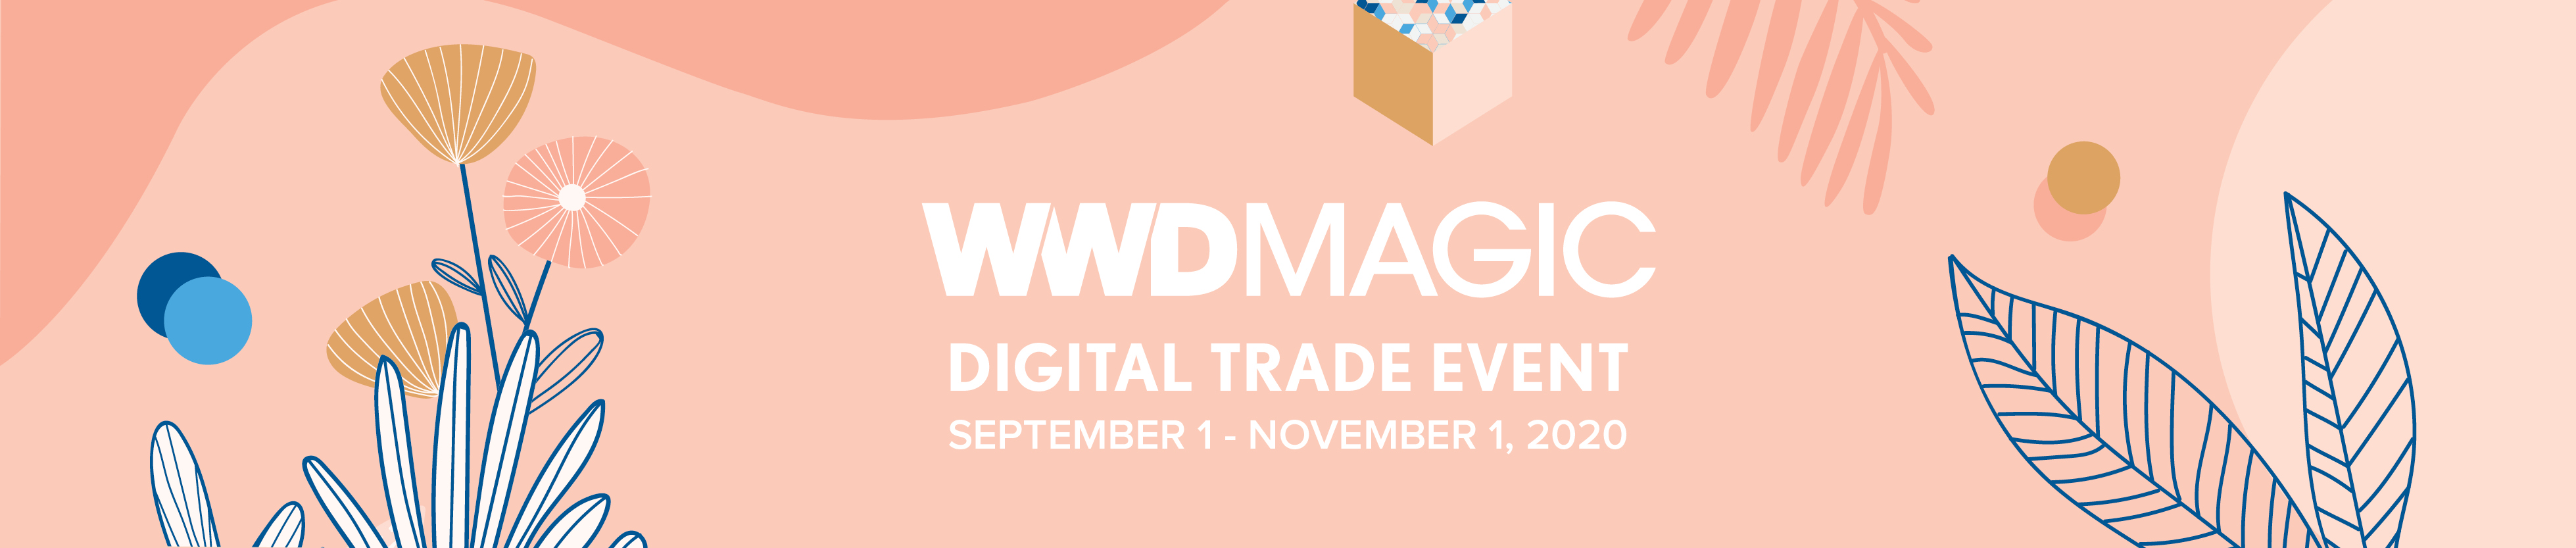 WWDMAGIC | MAGIC Las Vegas Digital Trade Event